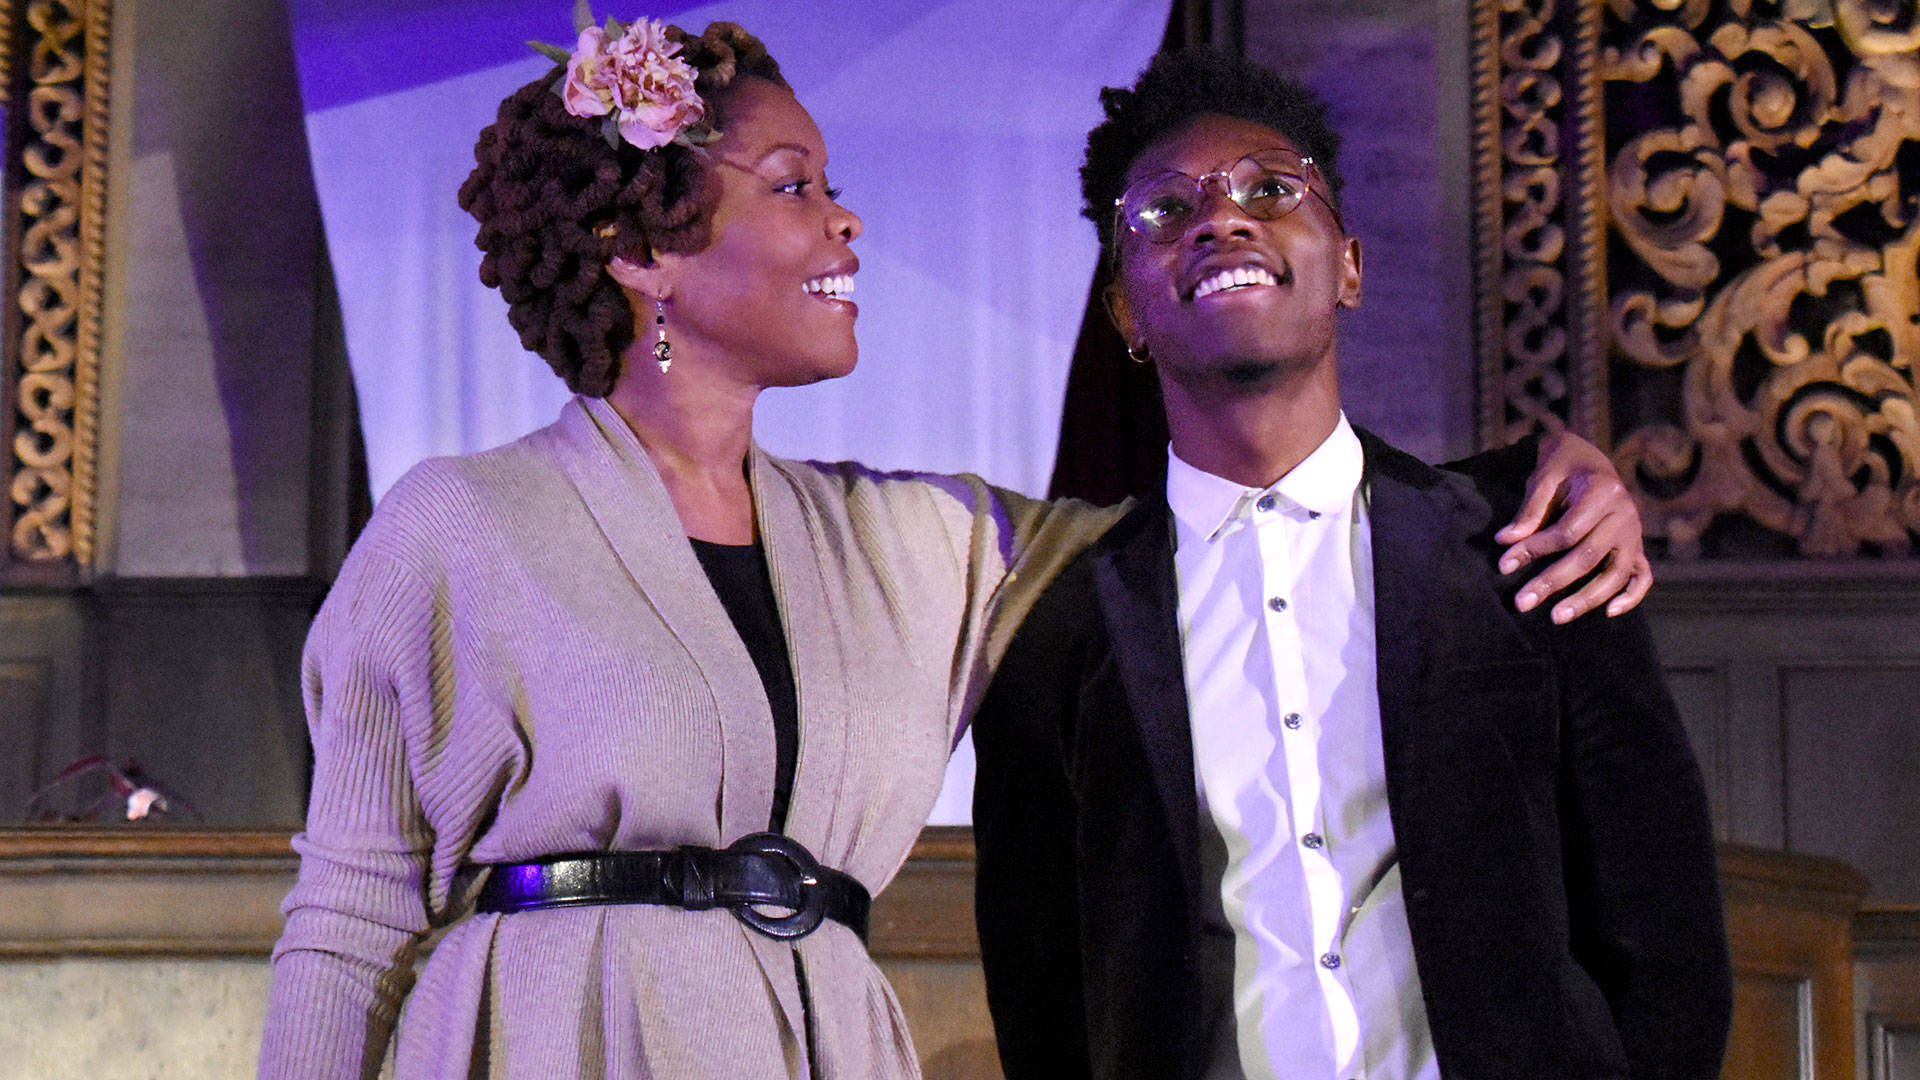 Halili Knox (Viola) and Michael Curry (Marcus) in 'Dance of the Holy Ghosts.'  Simone Finney